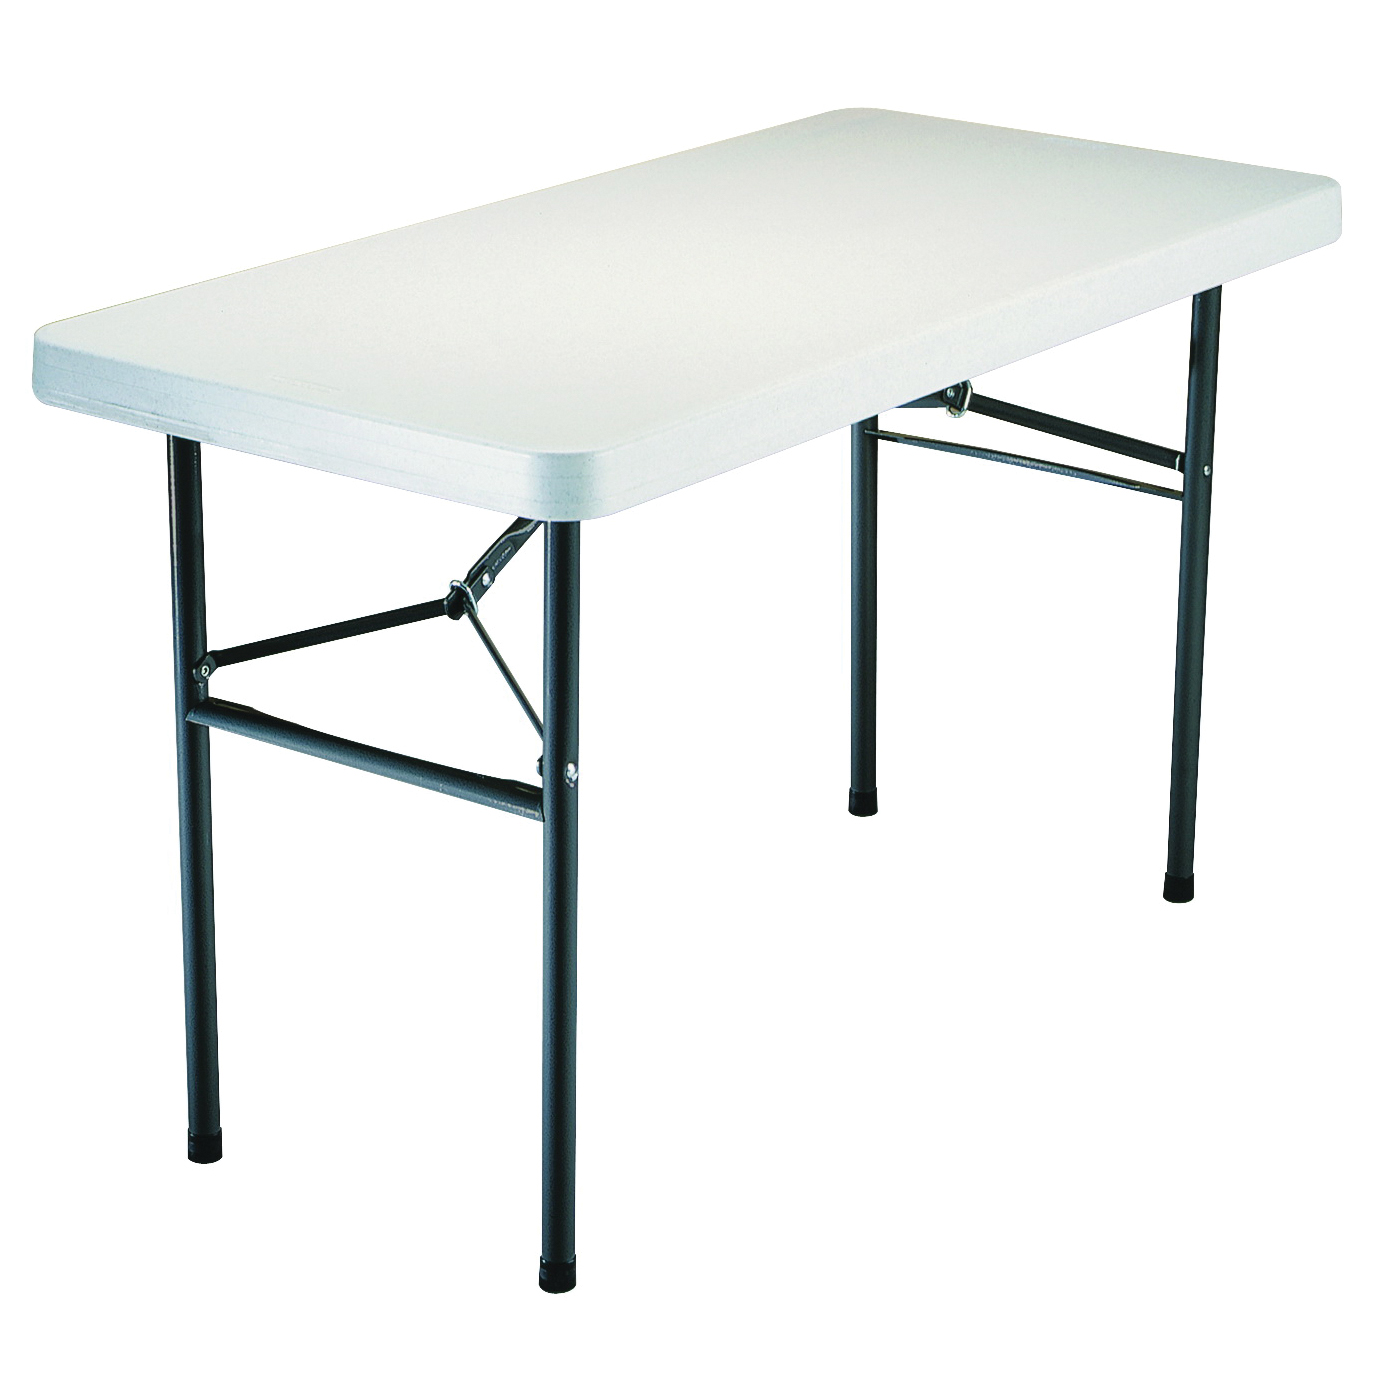 Picture of Lifetime Products 2940 Folding Table, Steel Frame, Polyethylene Tabletop, Gray/White